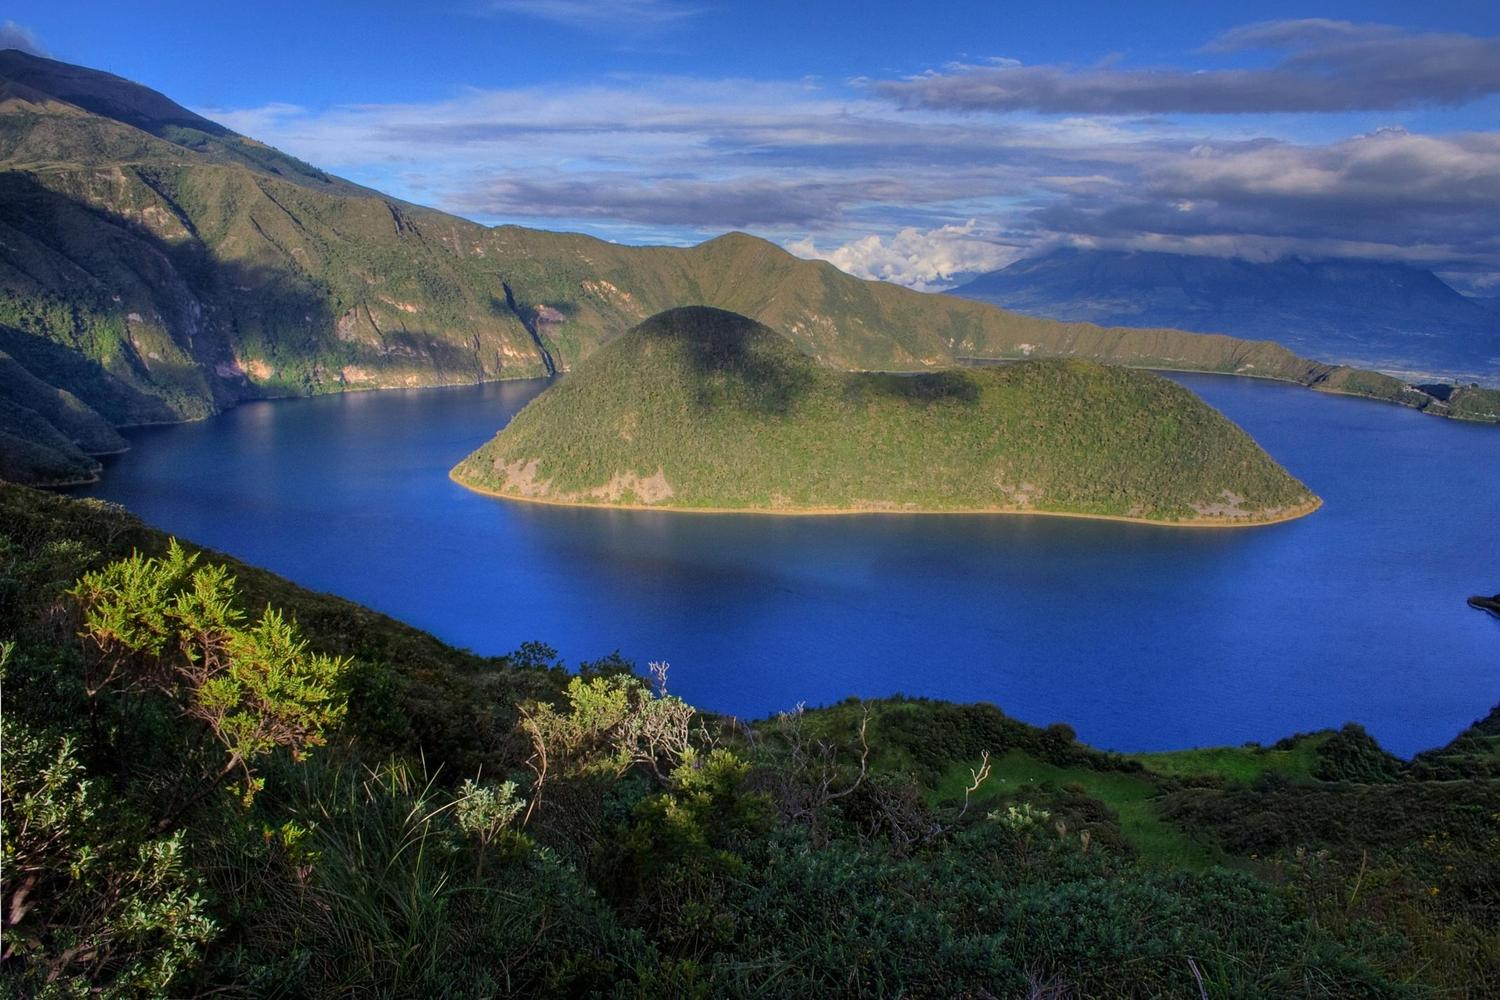 The beautiful Cuicocha Lake in the Ecuadorian Andes